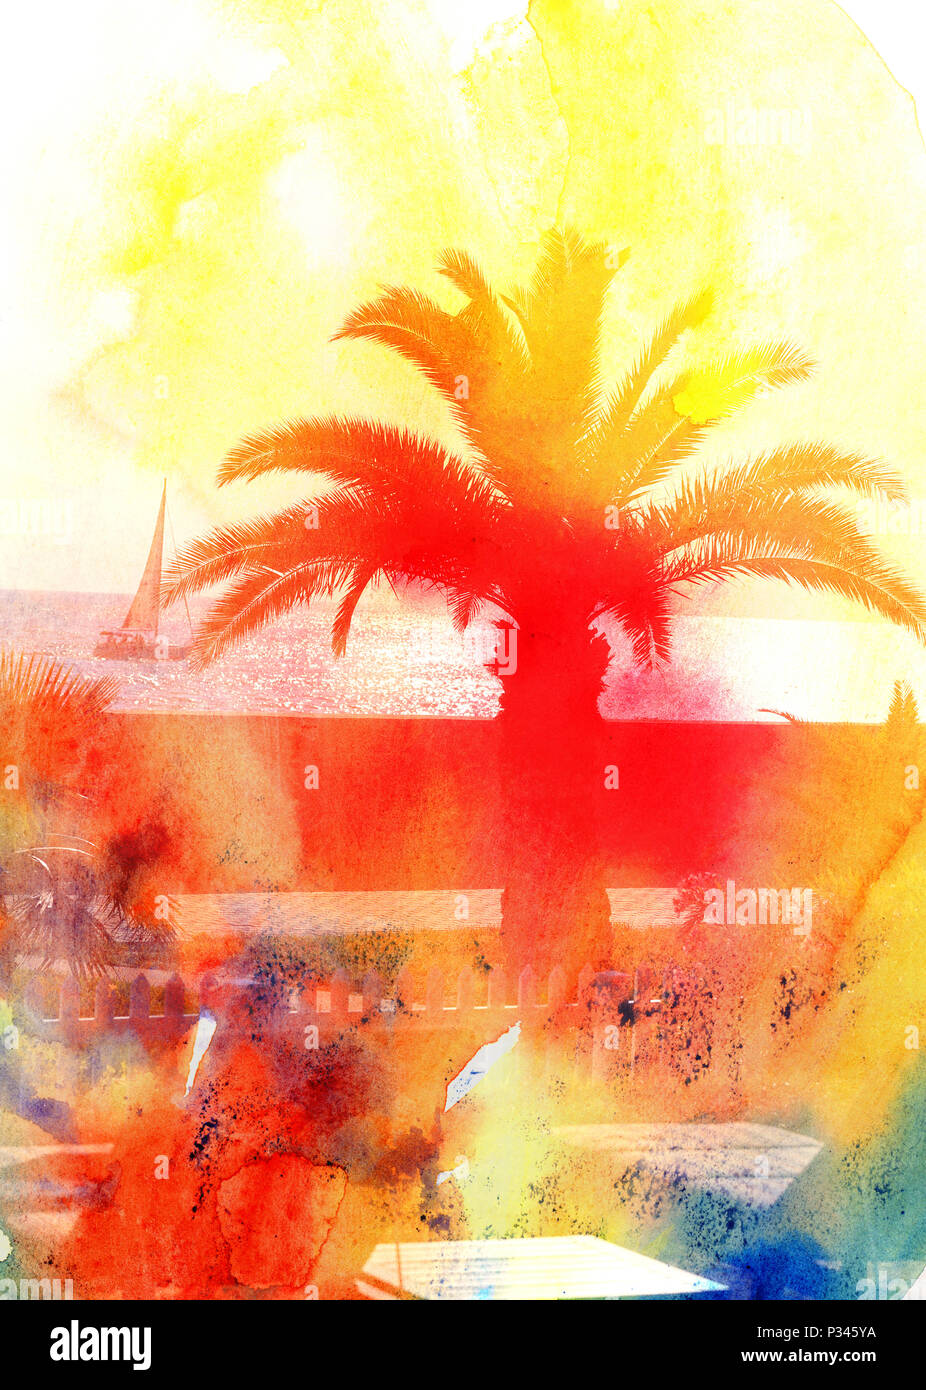 Retro photo background with palm trees and sunshine paradise island retro photo background with palm trees and sunshine paradise island template for design poster business card colourmoves